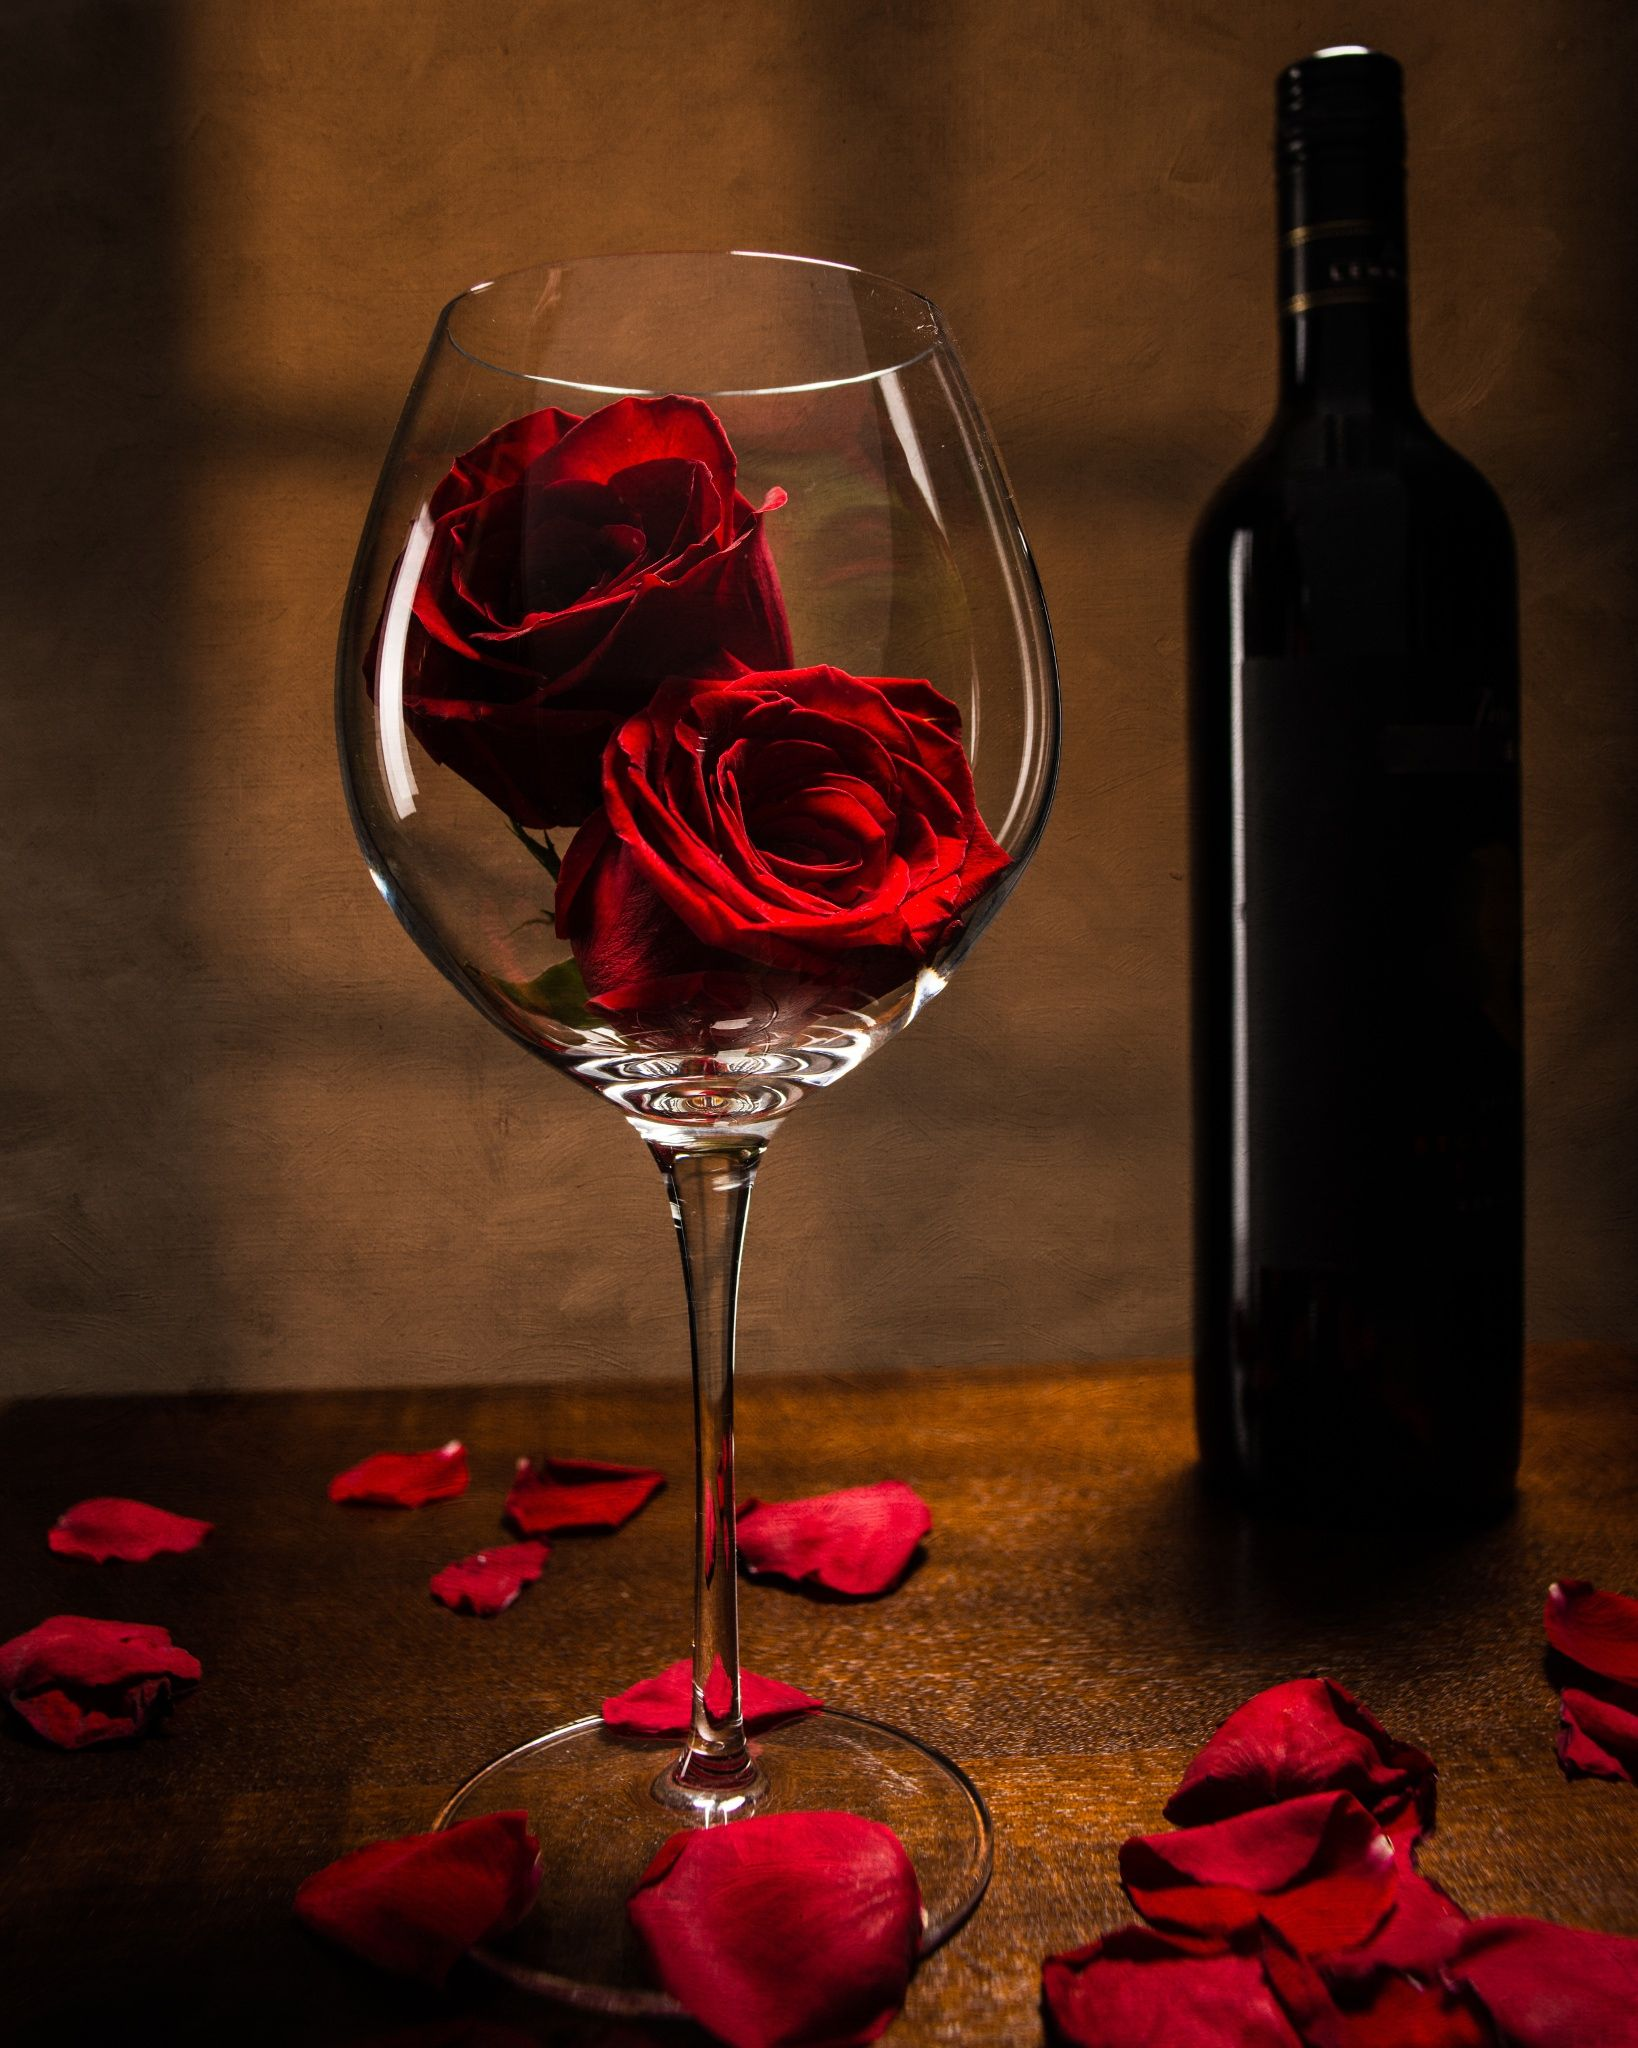 Wine Roses 3 Wine Photography Wine Art Red Roses Wallpaper